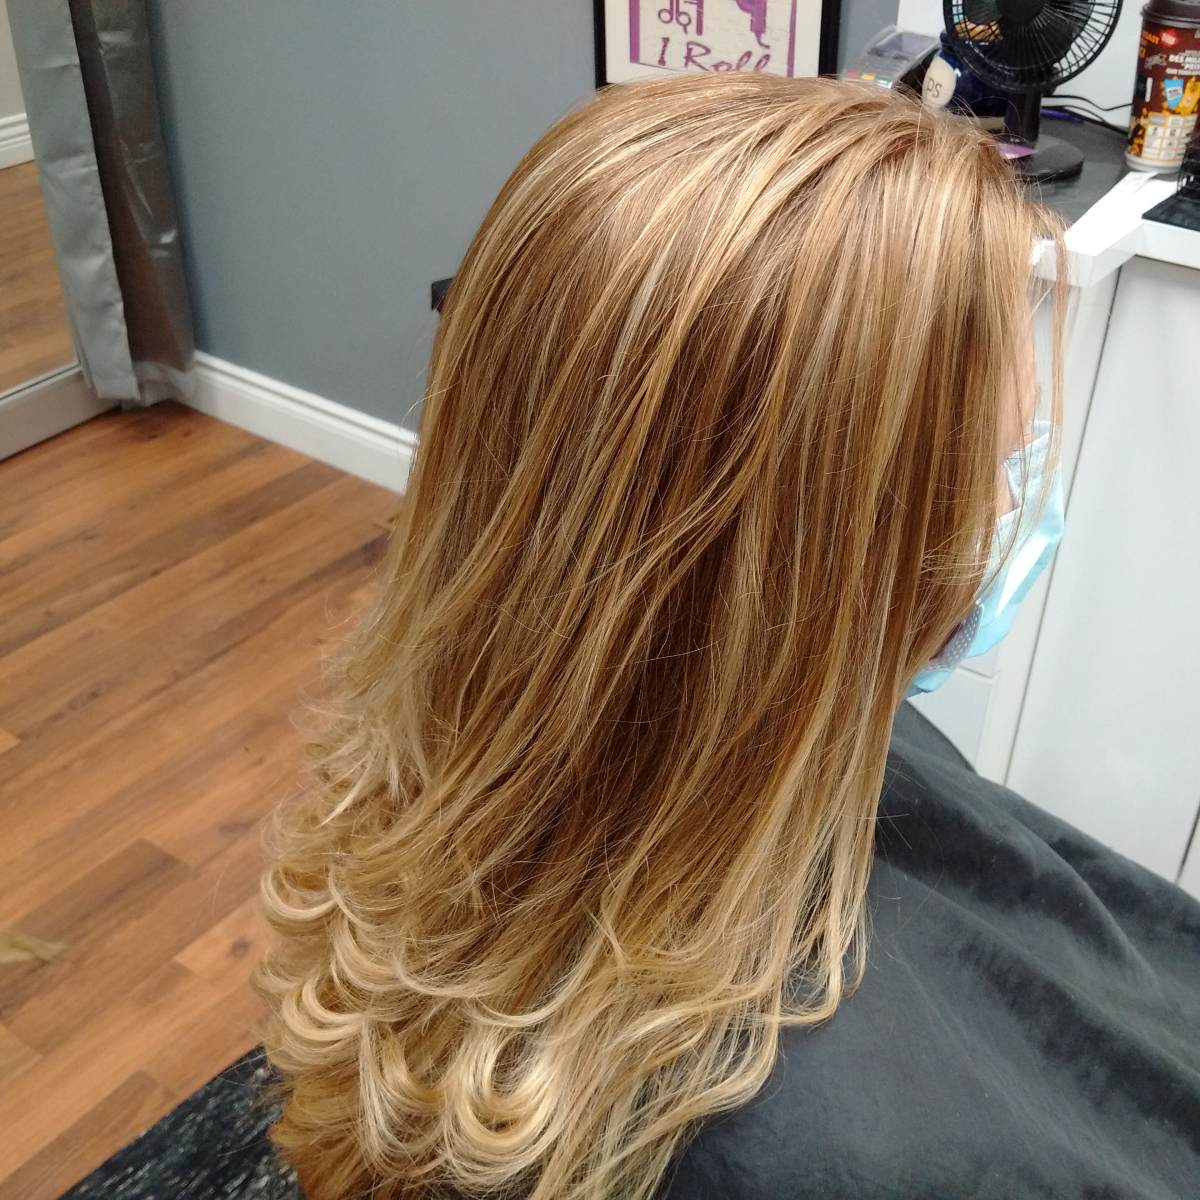 beautiful woman hair after colouring